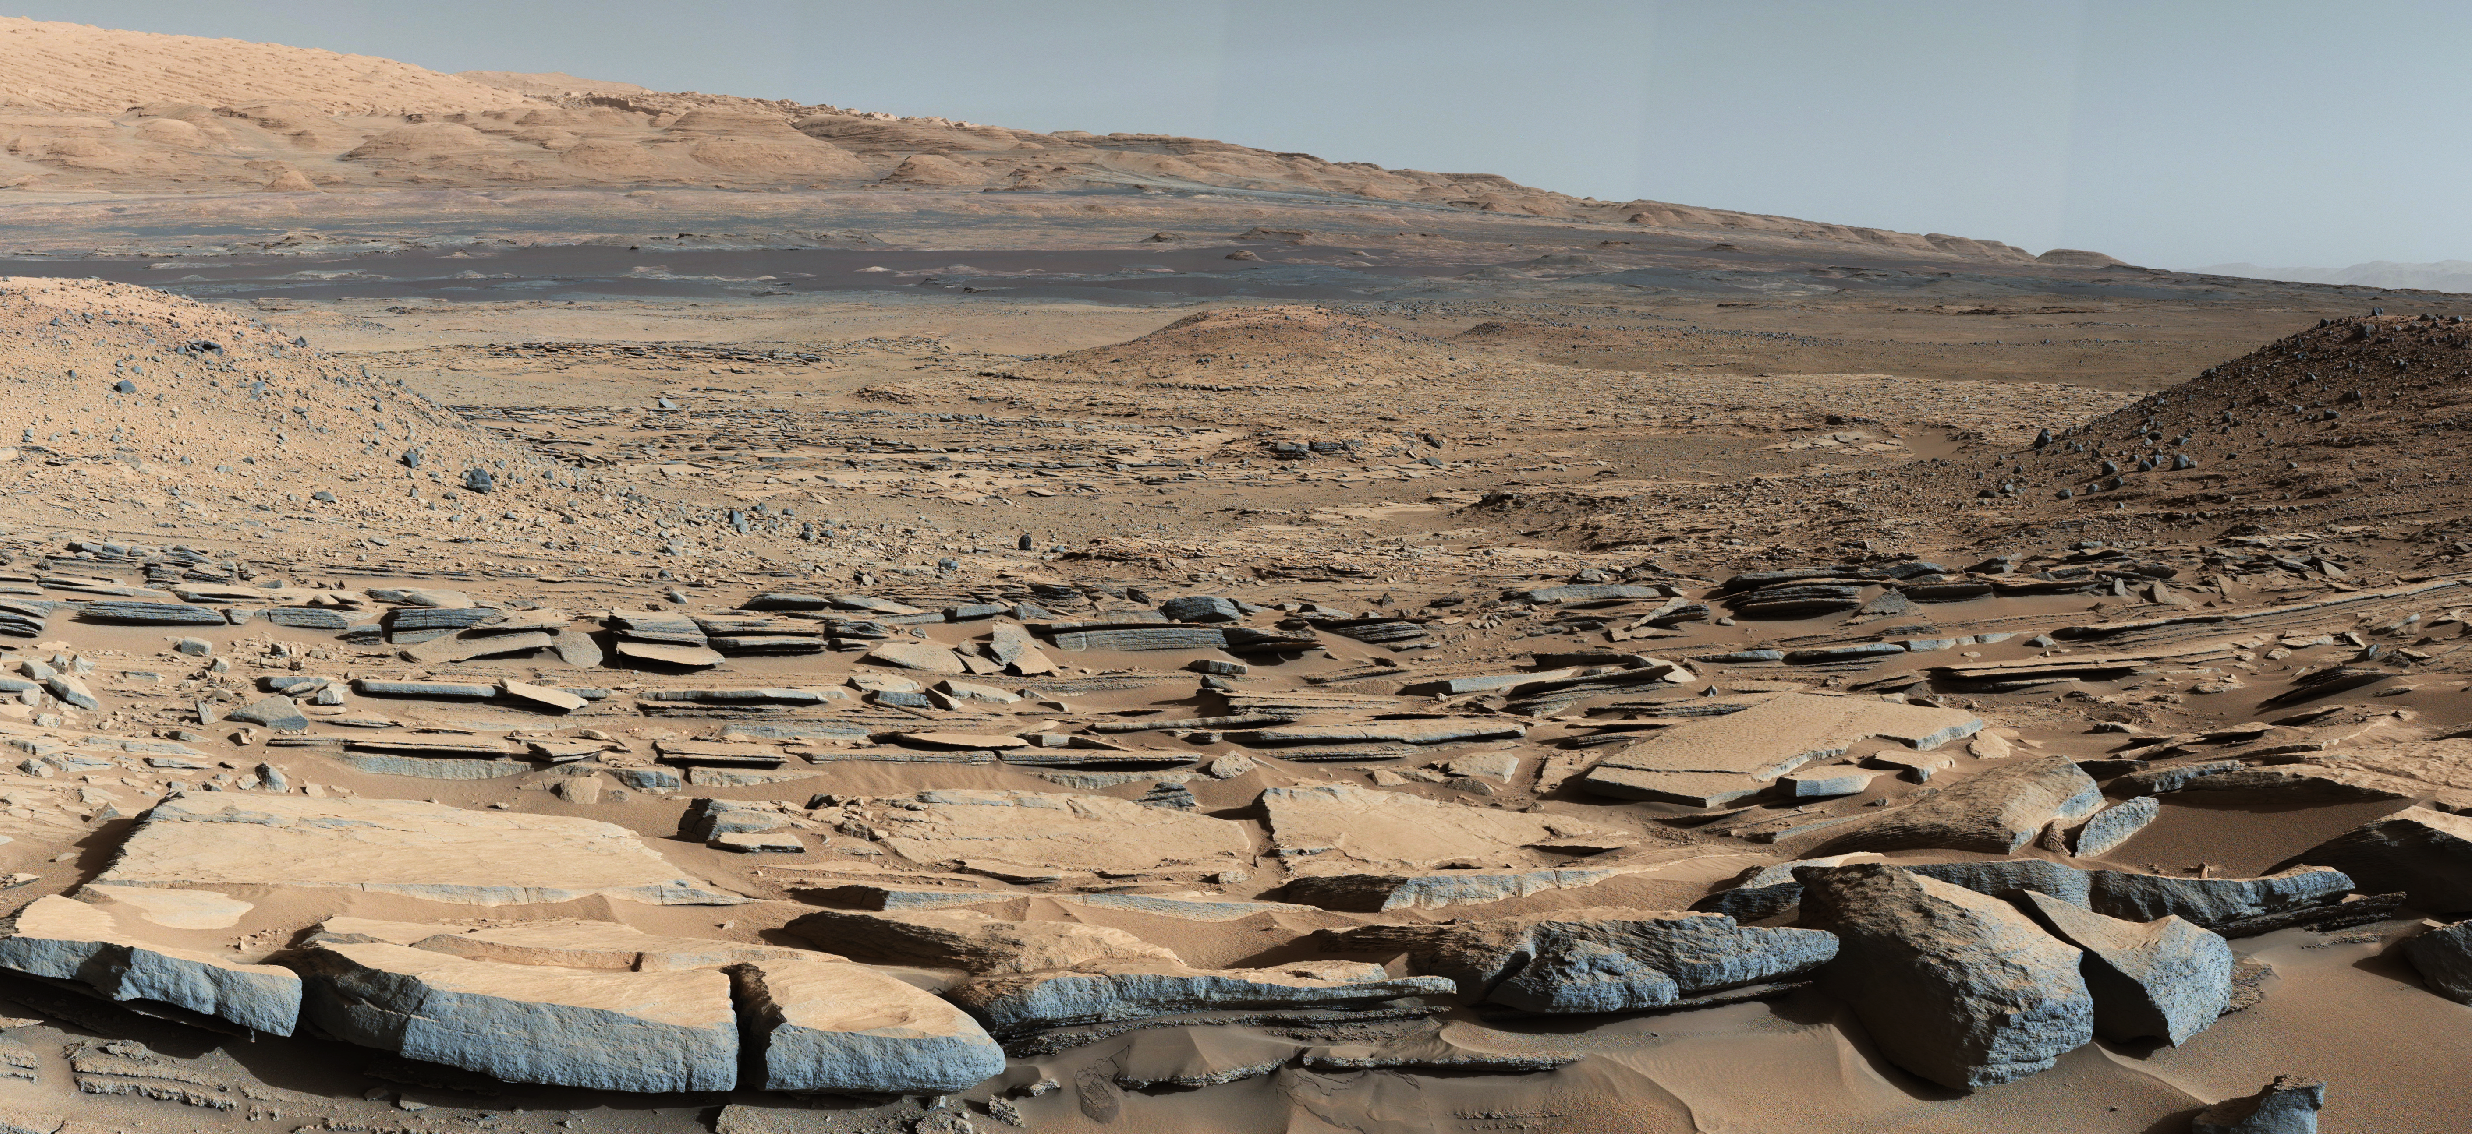 """A view from the """"Kimberley"""" formation on Mars taken by NASA's Curiosity rover. The strata in the foreground dip towards the base of Mount Sharp, indicating flow of water toward a basin that existed before the larger bulk of the mountain formed. Credits: NASA"""